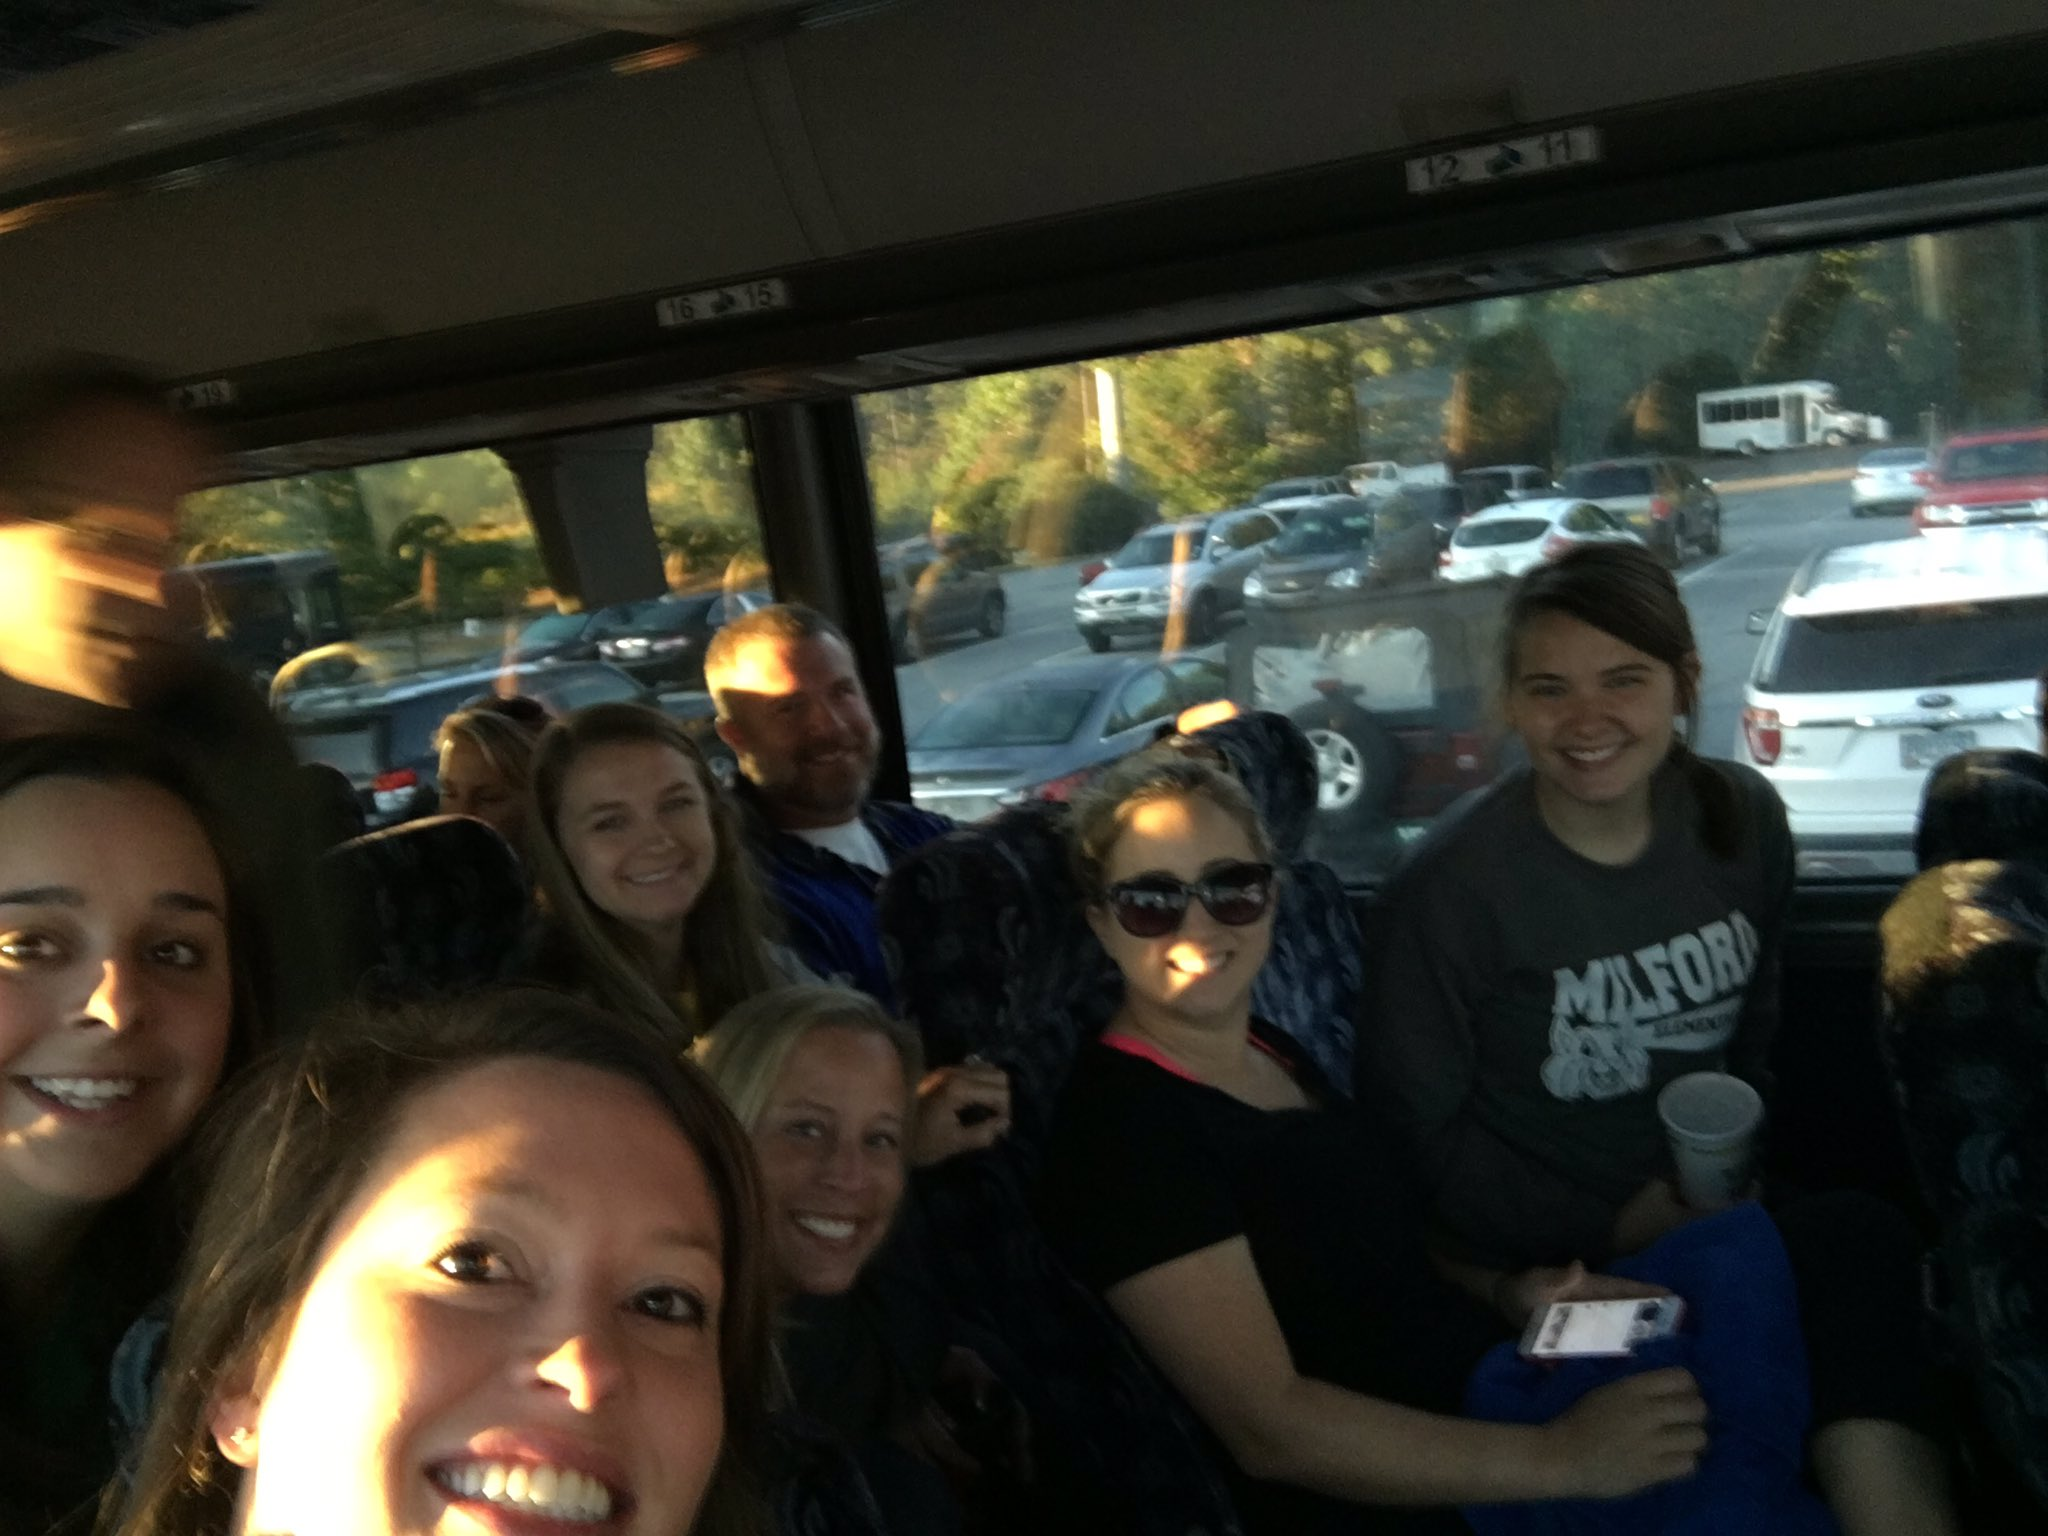 Innovation Academy- Minds in Motion! Headed to do some team building! https://t.co/p5xOstaZ04